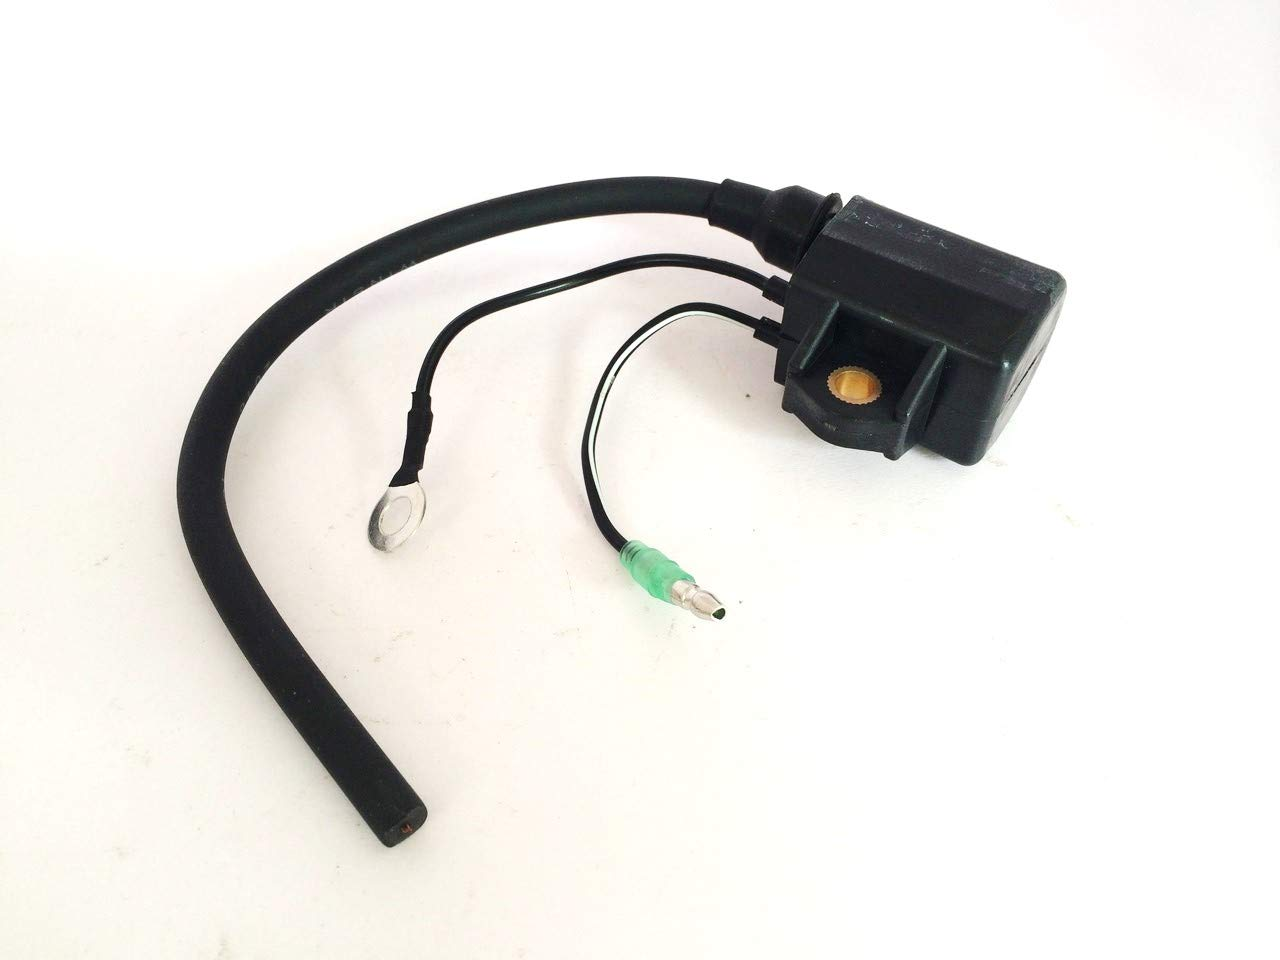 90HP Marine Parts Engine Boat Outboard Motor Ignition Coil ASSY for Yamaha Outboard motor 697-85570-00 6H2-85570-00 55HP